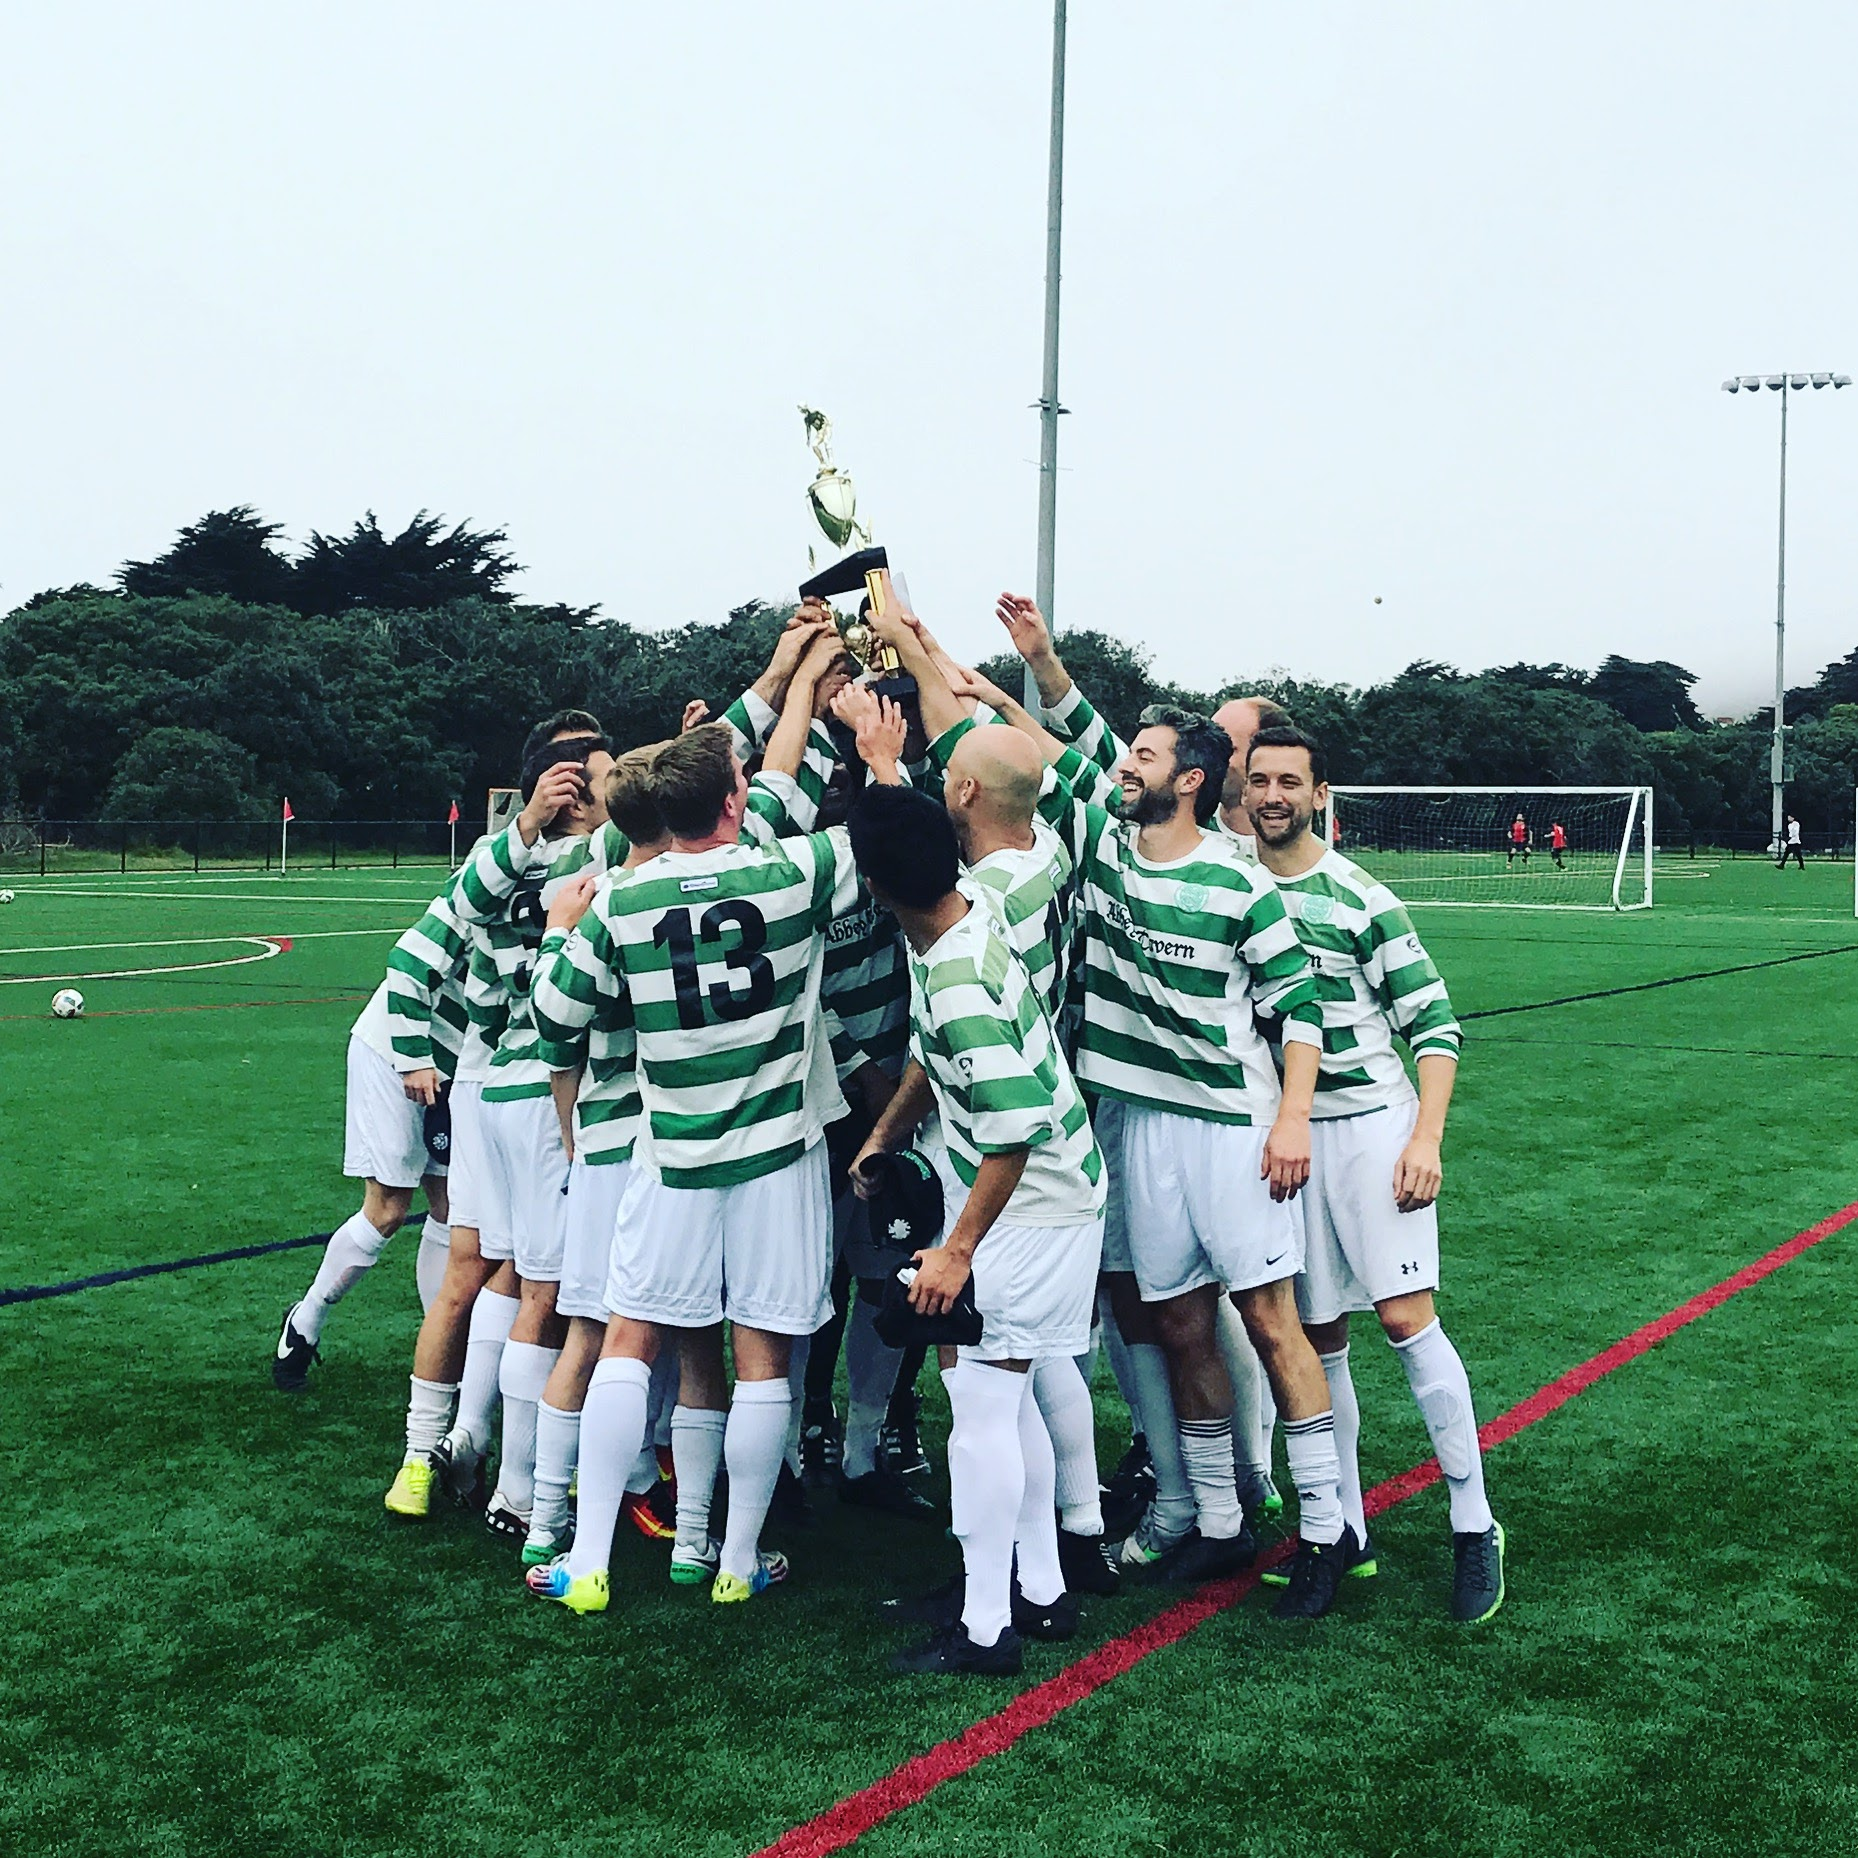 San Francisco Celtic Soccer Club